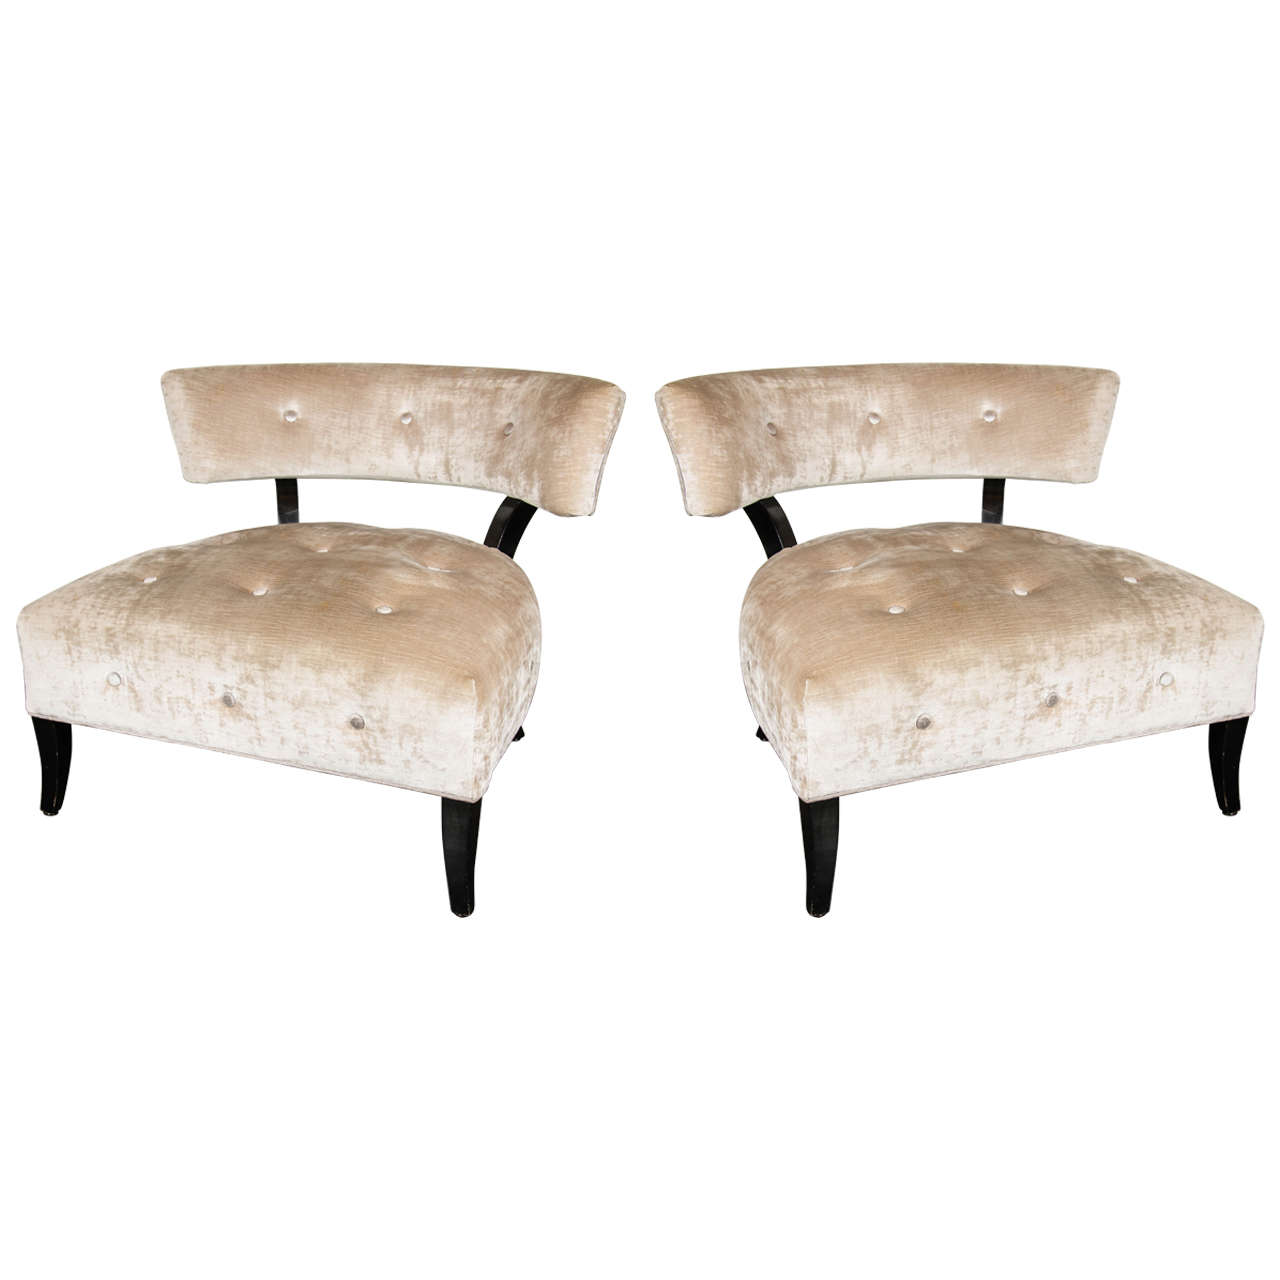 Elegant Pair Of Curved Back Klismos Chairs In The Style Of William Haines At 1stdibs